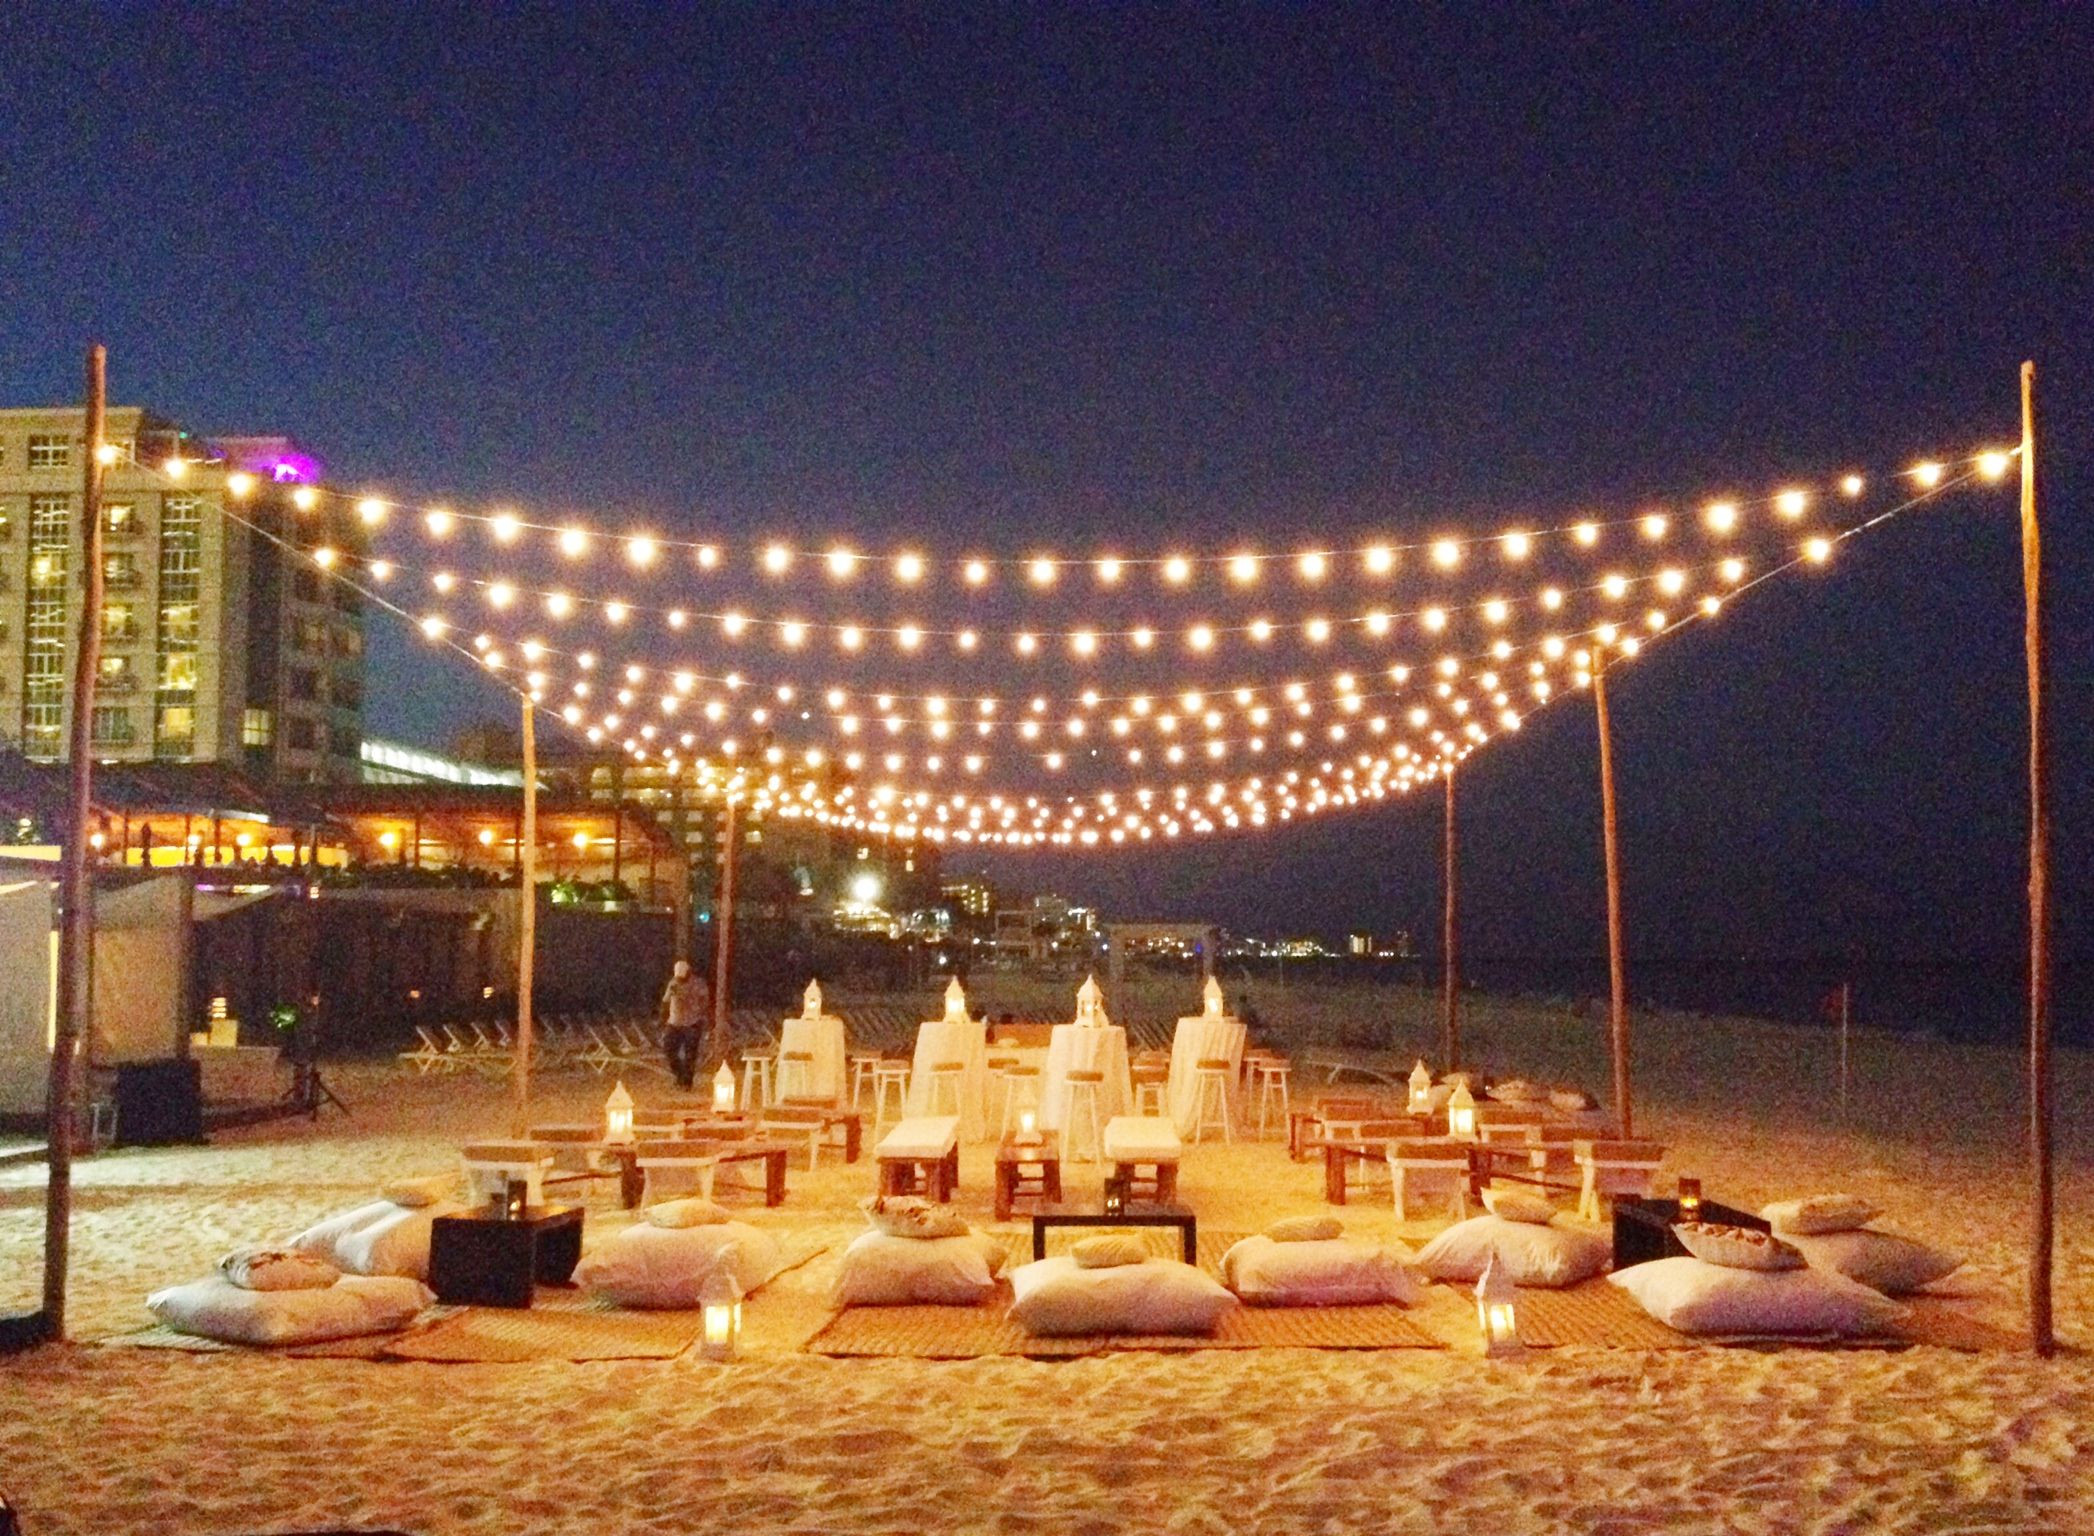 Outdoor Beach Party Ideas  romantic and intimate beach party set up